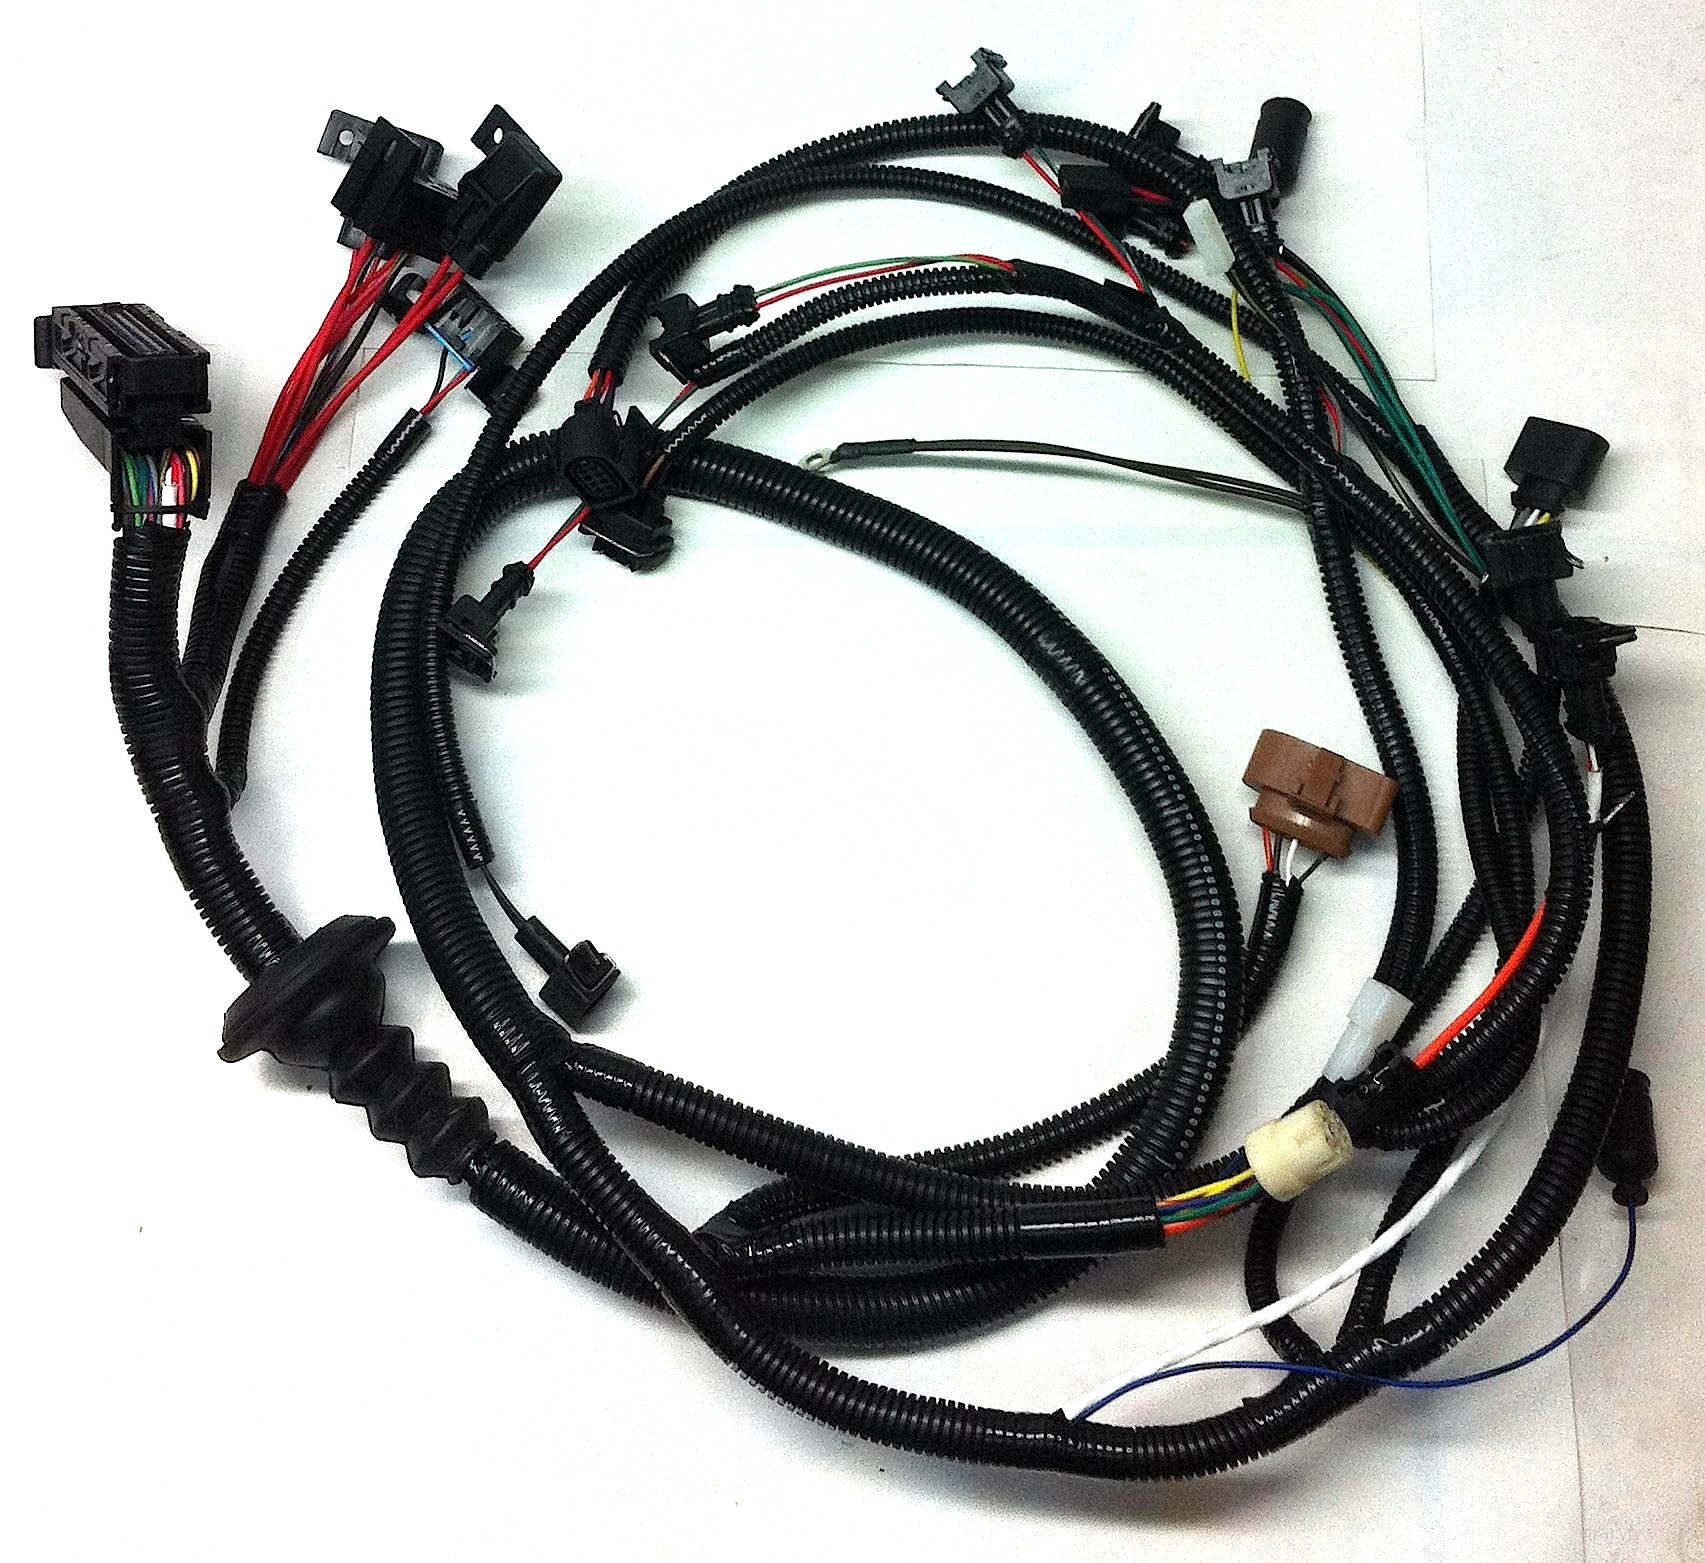 Wiring_Harness_2LR 2lr tiico conversion wiring harness foreign auto & supply, inc automotive wiring harness at readyjetset.co